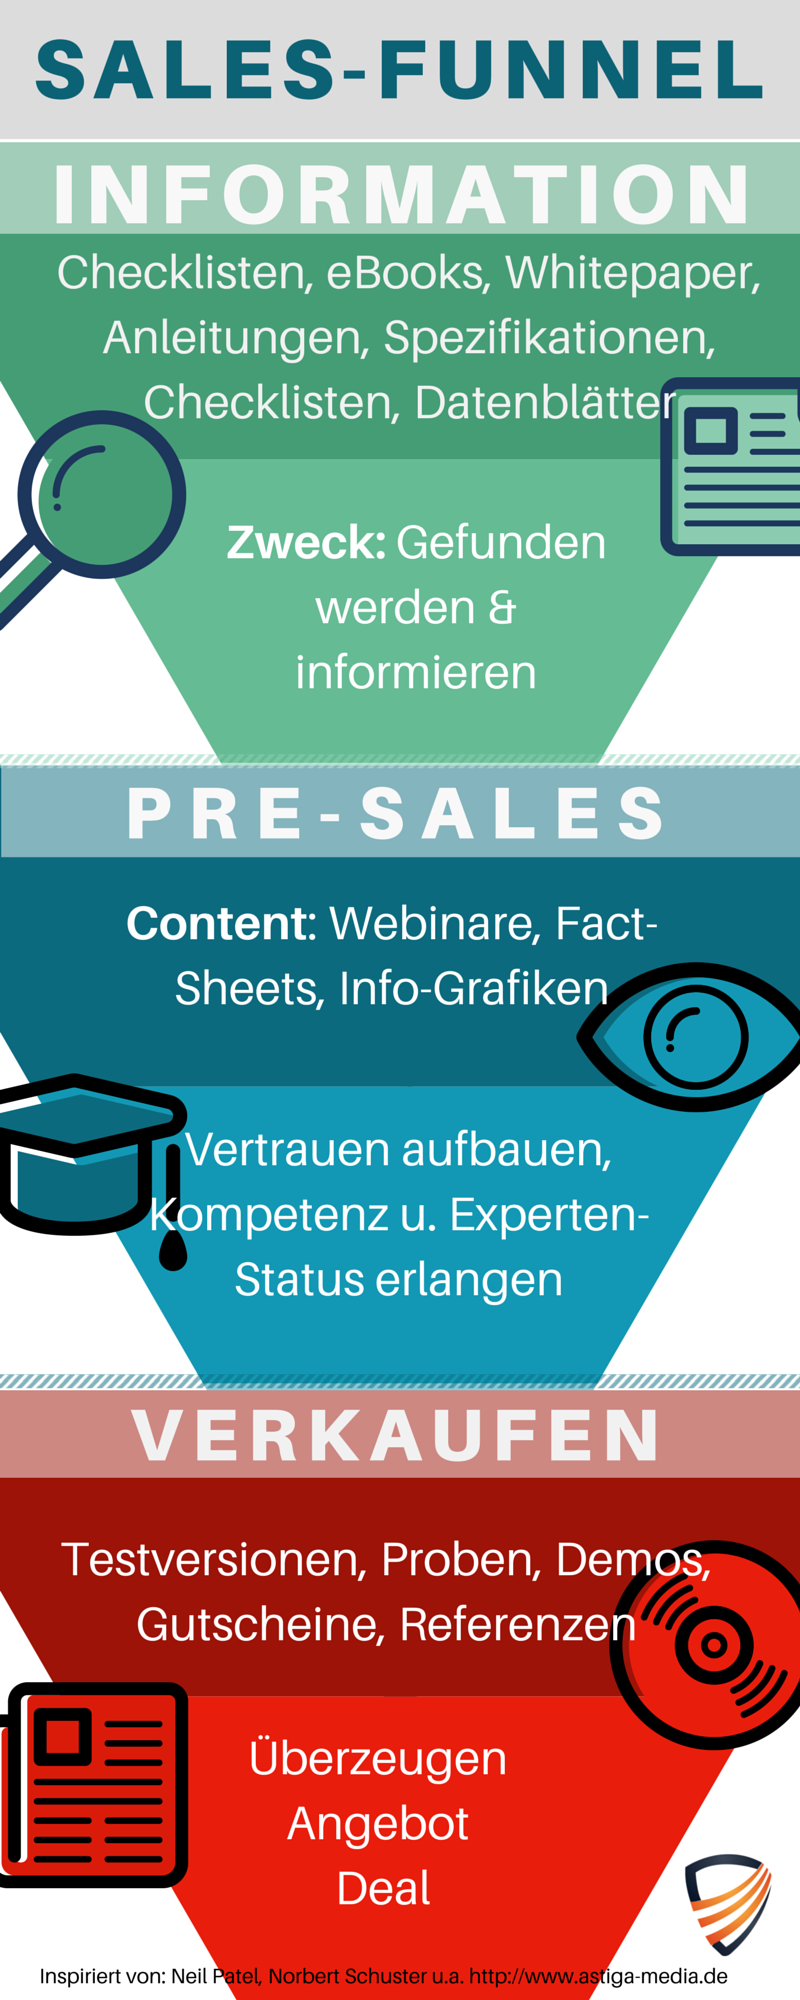 So funktioniert der Sales-Funnel